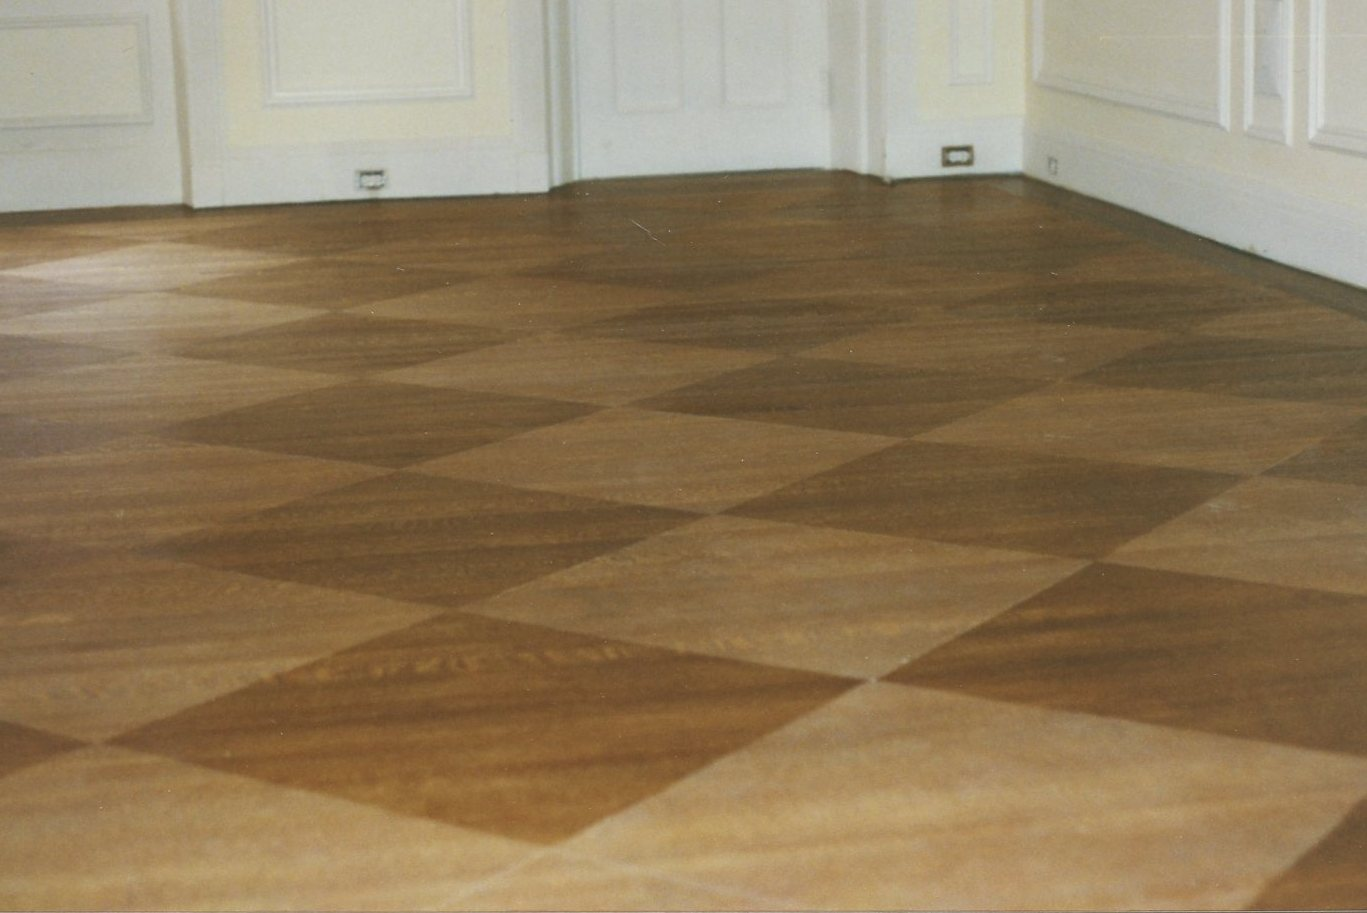 Stained hardwood floors duffyfloors for Where to get hardwood floors